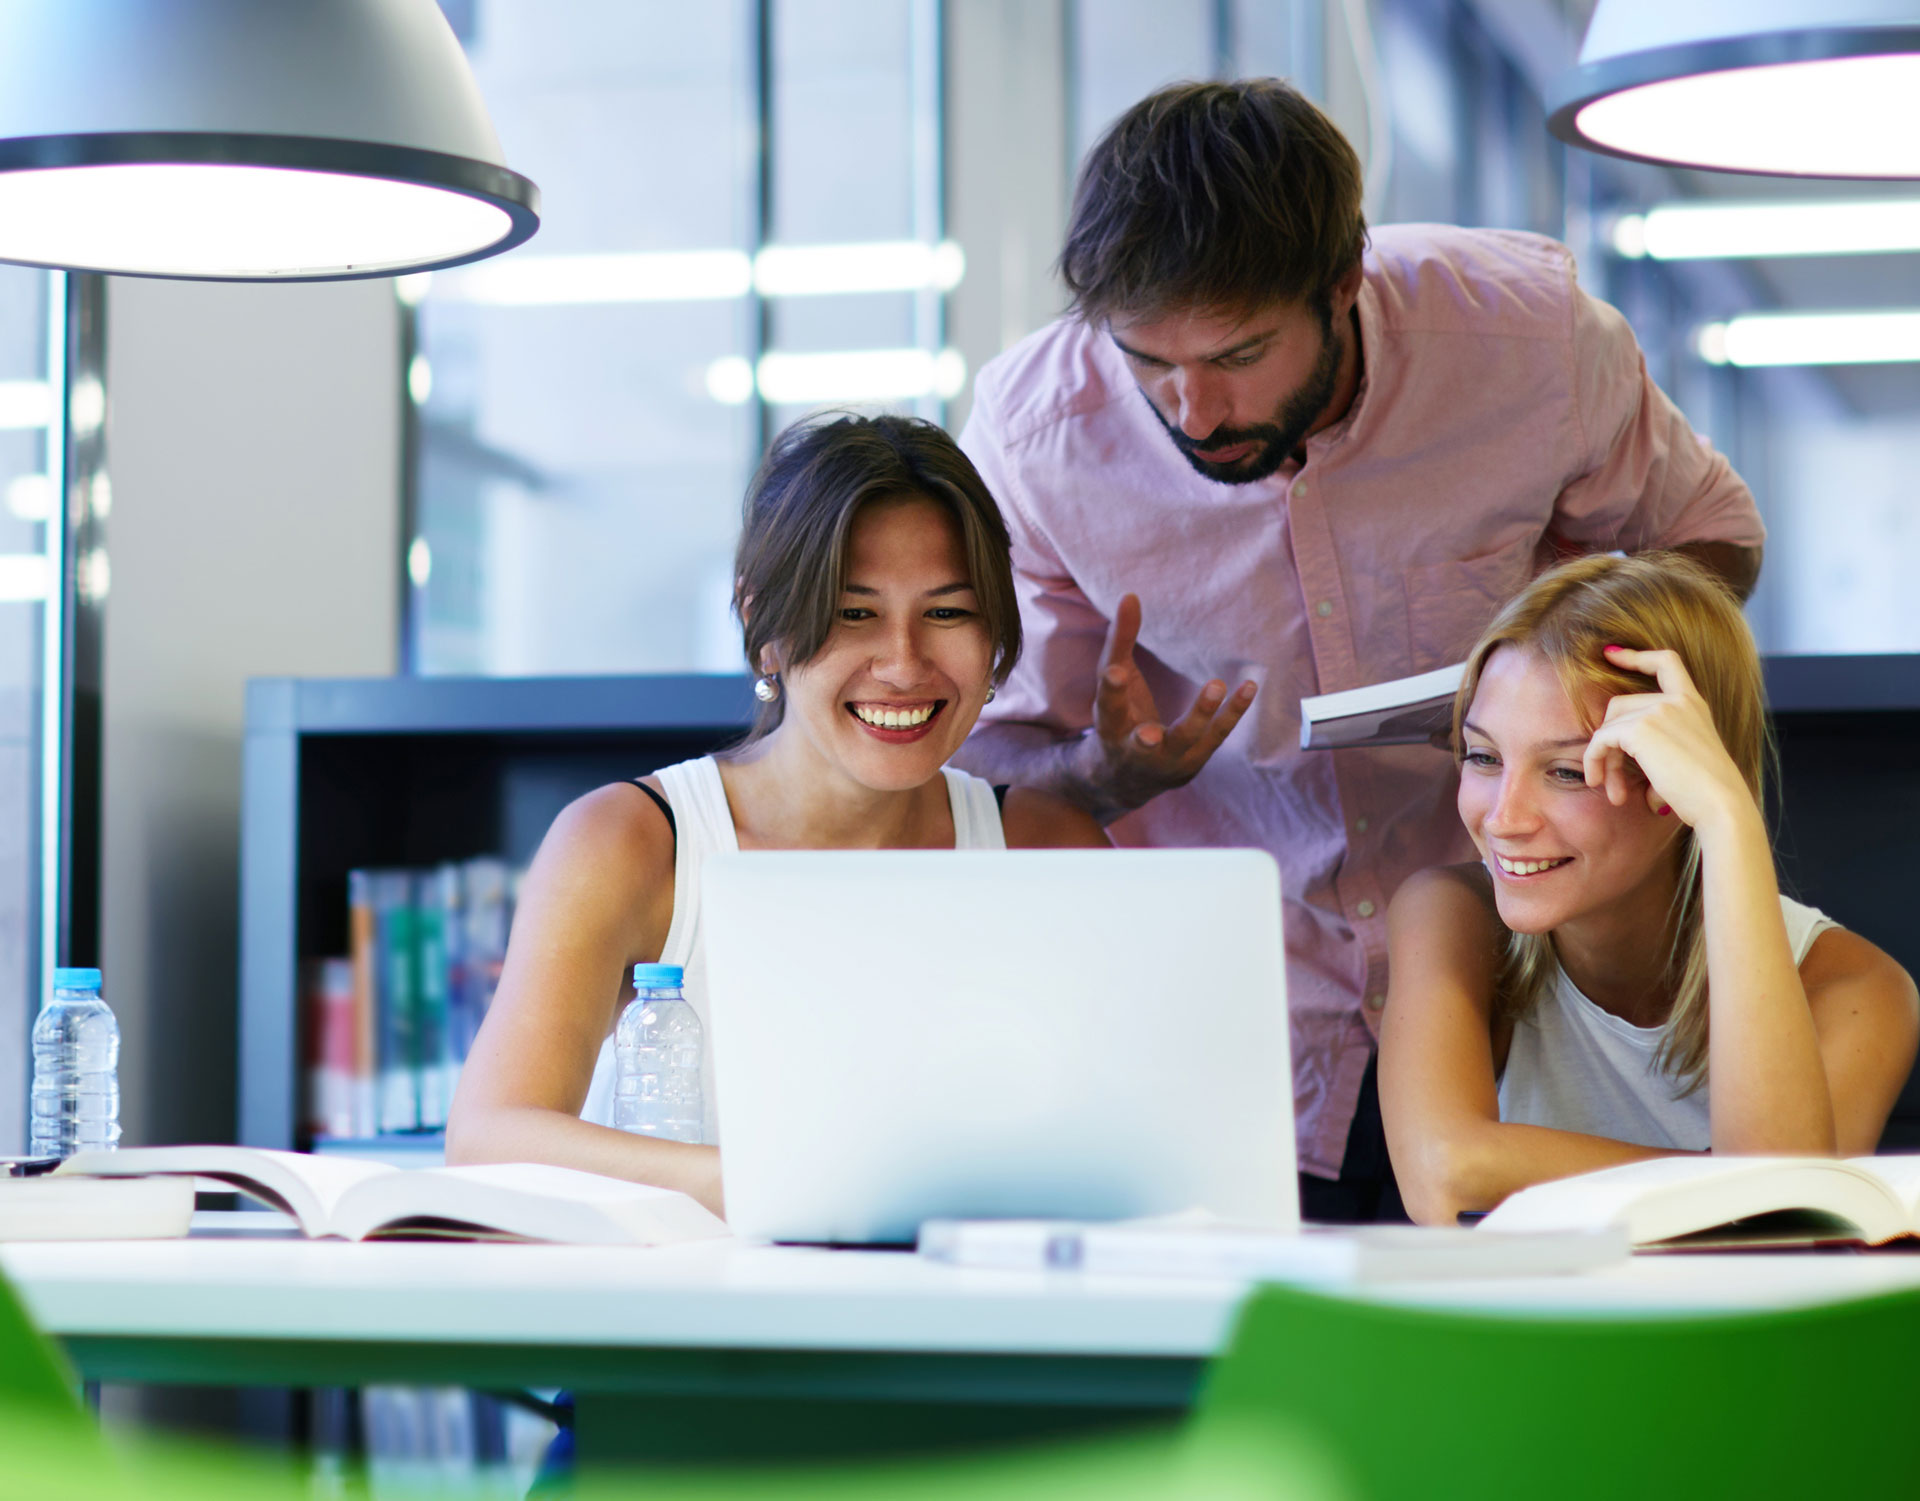 How to build a workplace where your team can flourish